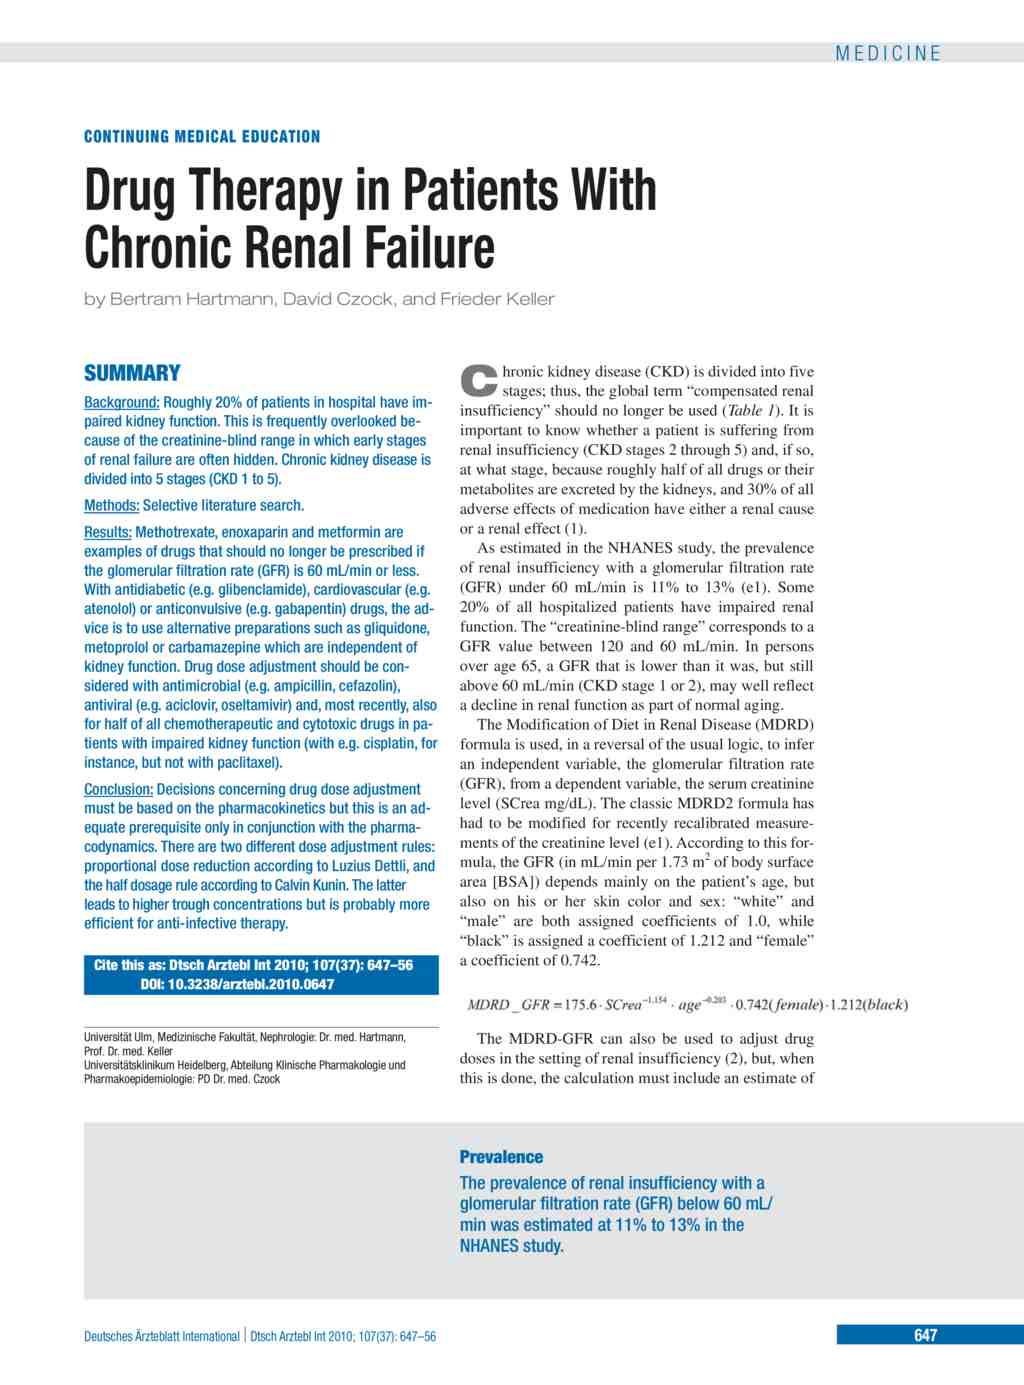 Drug Therapy in Patients With Chronic Renal Failure (17 09 2010)